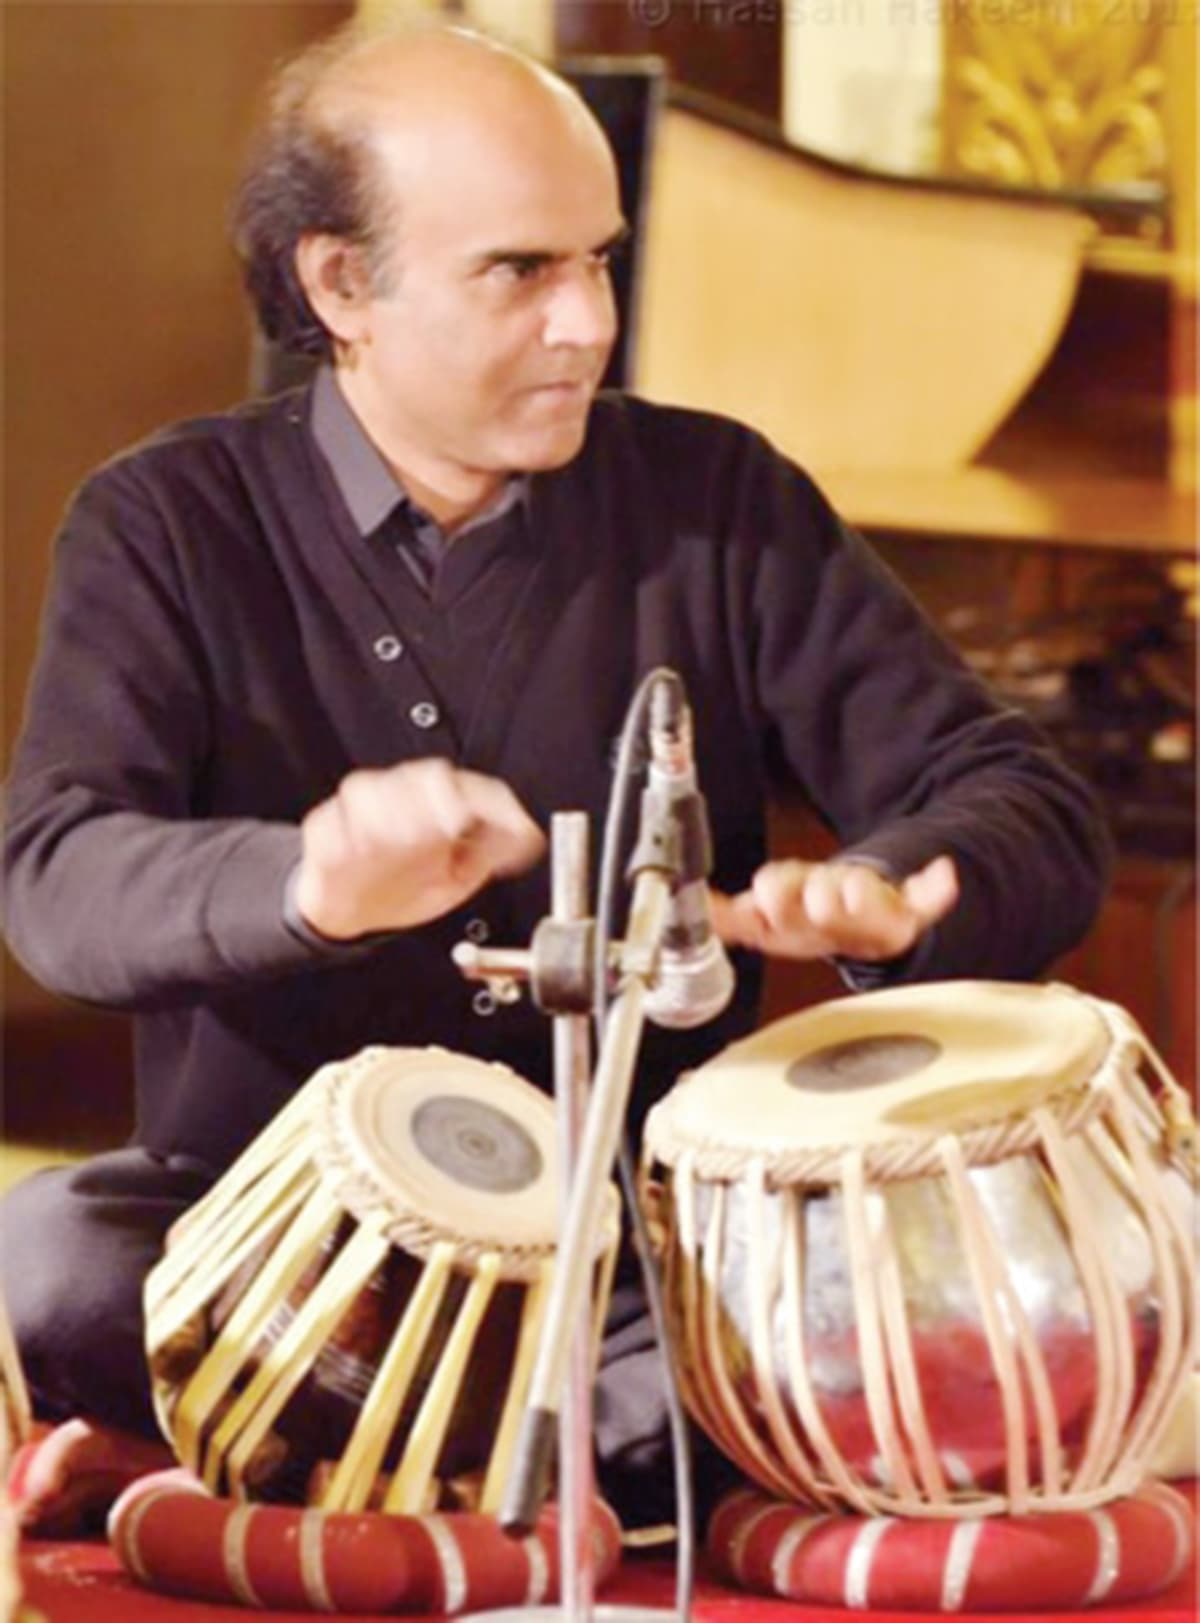 Mohammad Ajmal playing the tabla